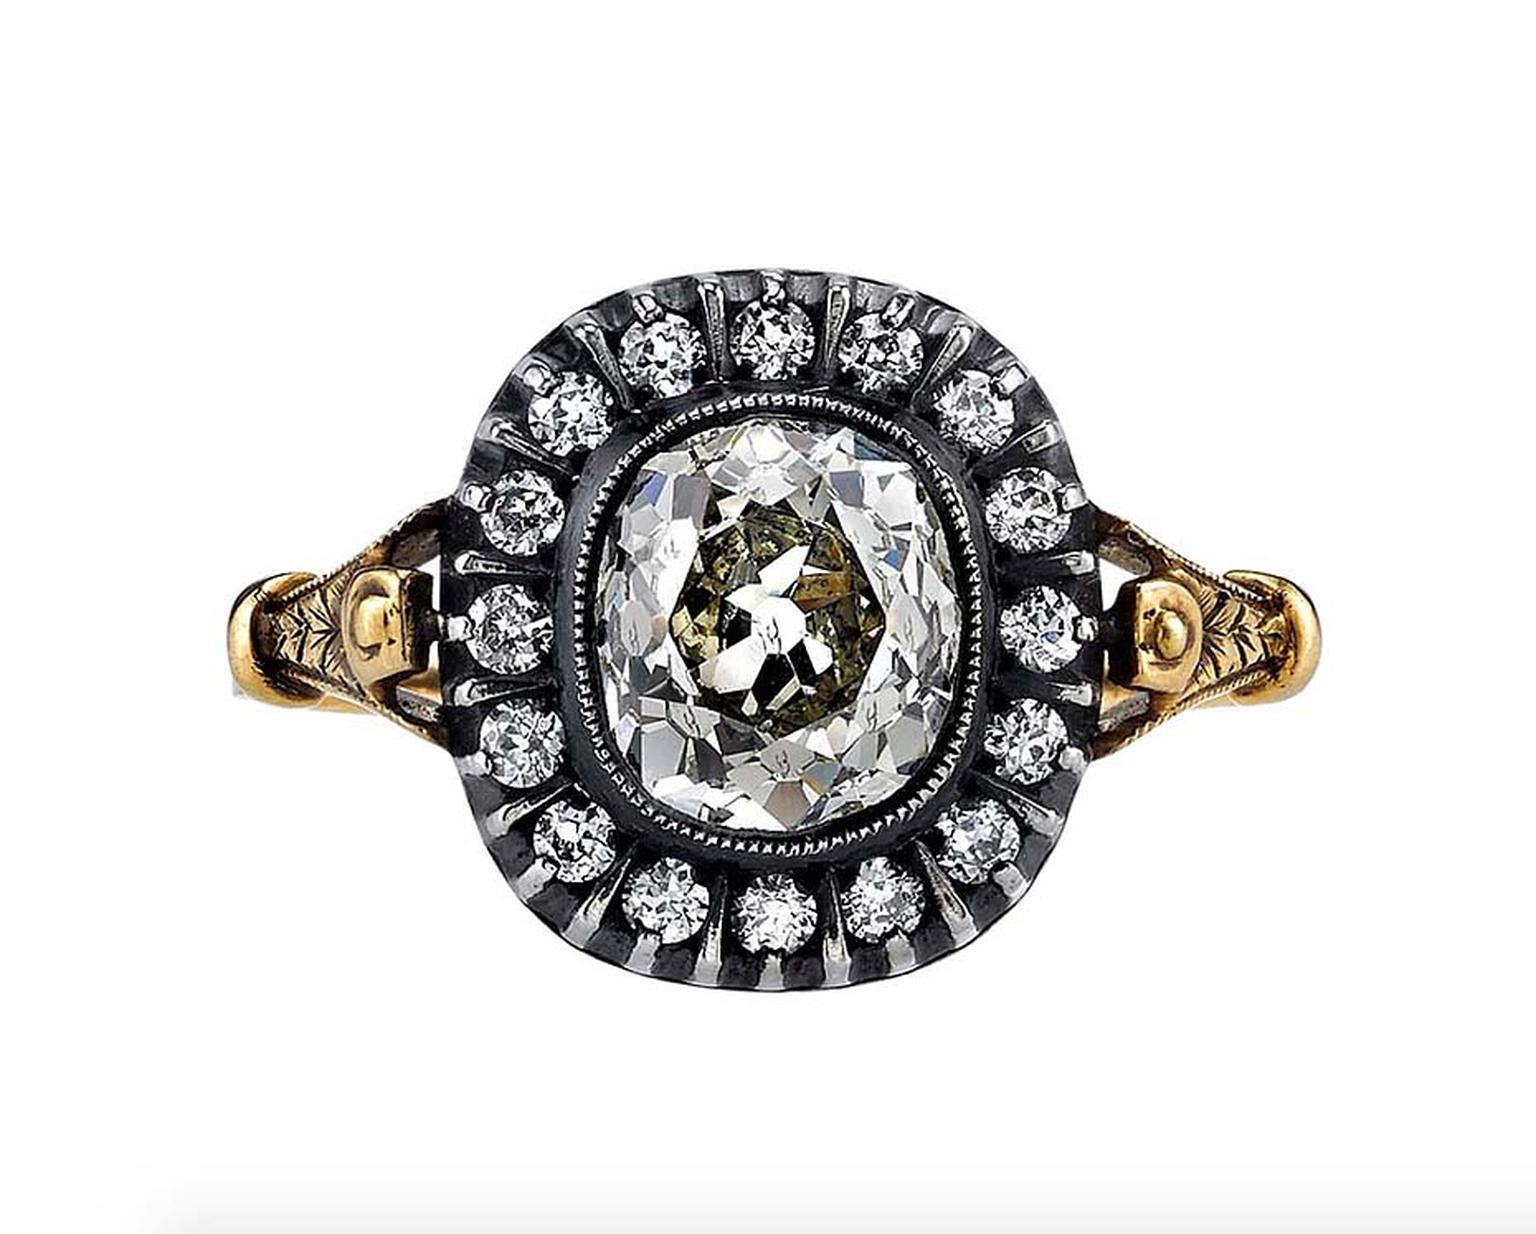 A classic Victorian design, this antique engagement ring features a cushion-cut diamond set in a handcrafted, oxidised, yellow gold and silver mounting, surrounded by a halo of diamonds. Available from 1stdibs.com.